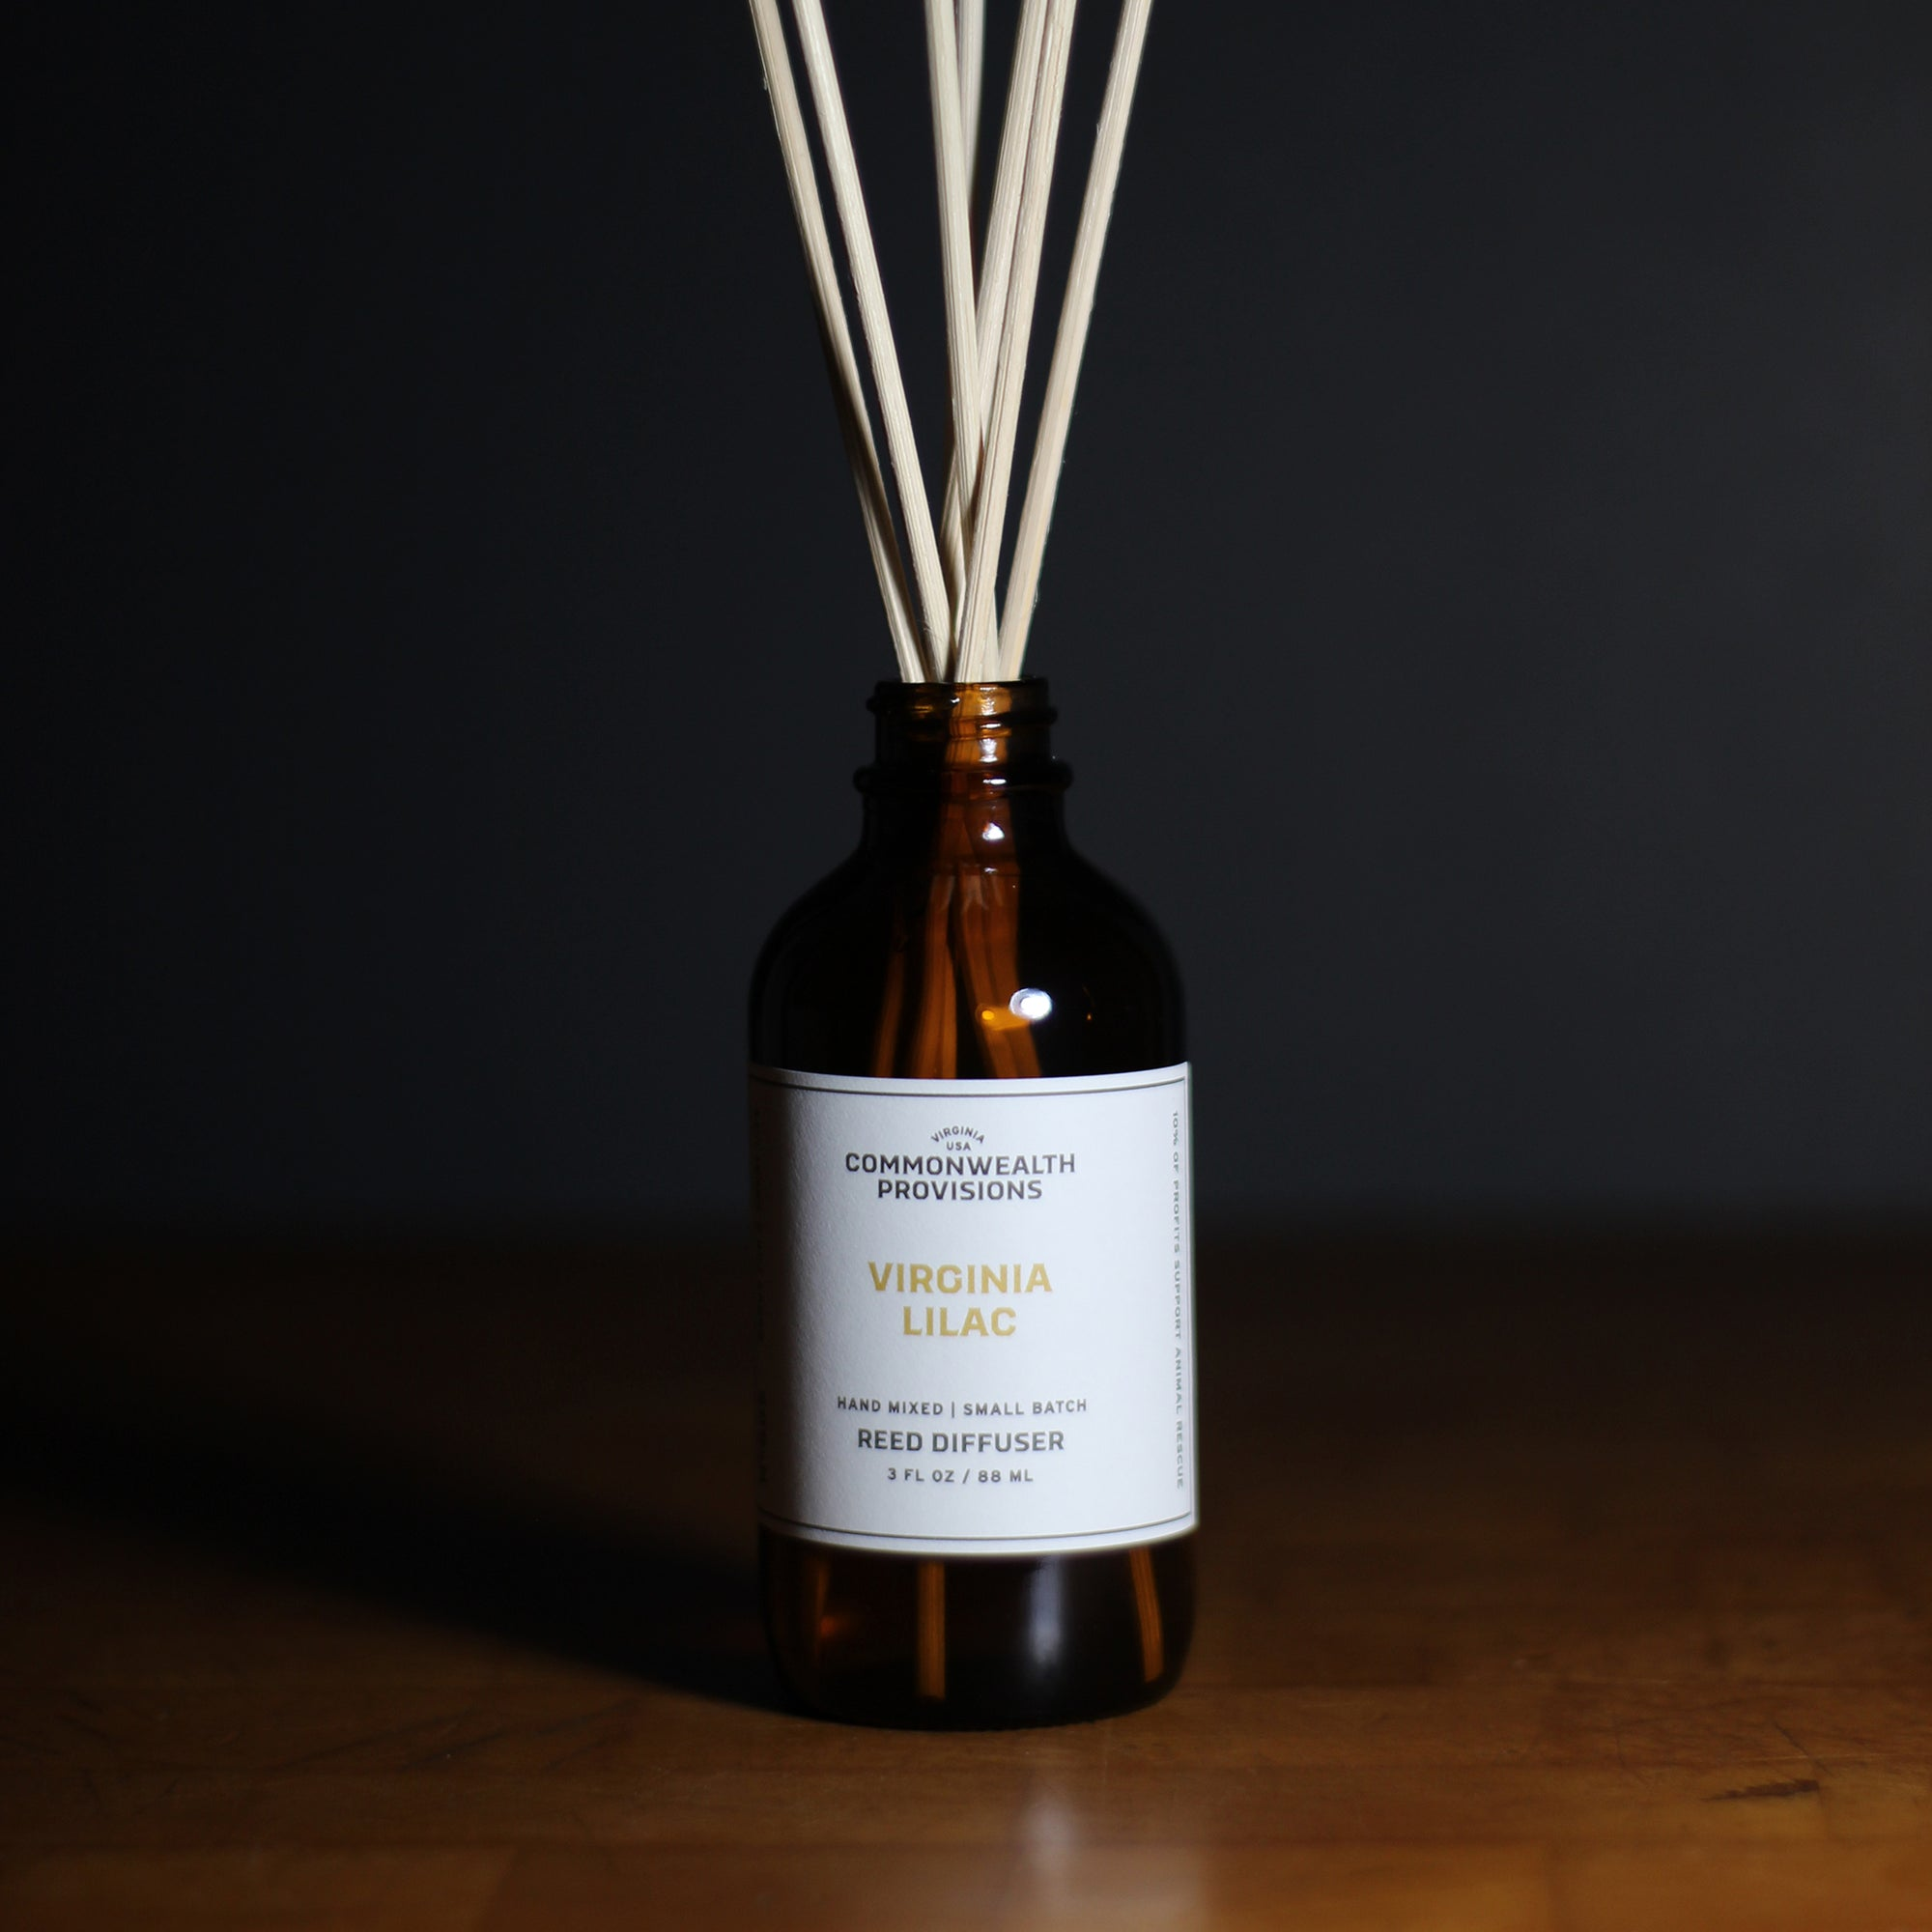 Commonwealth Provisions Virginia Lilac Reed Diffuser